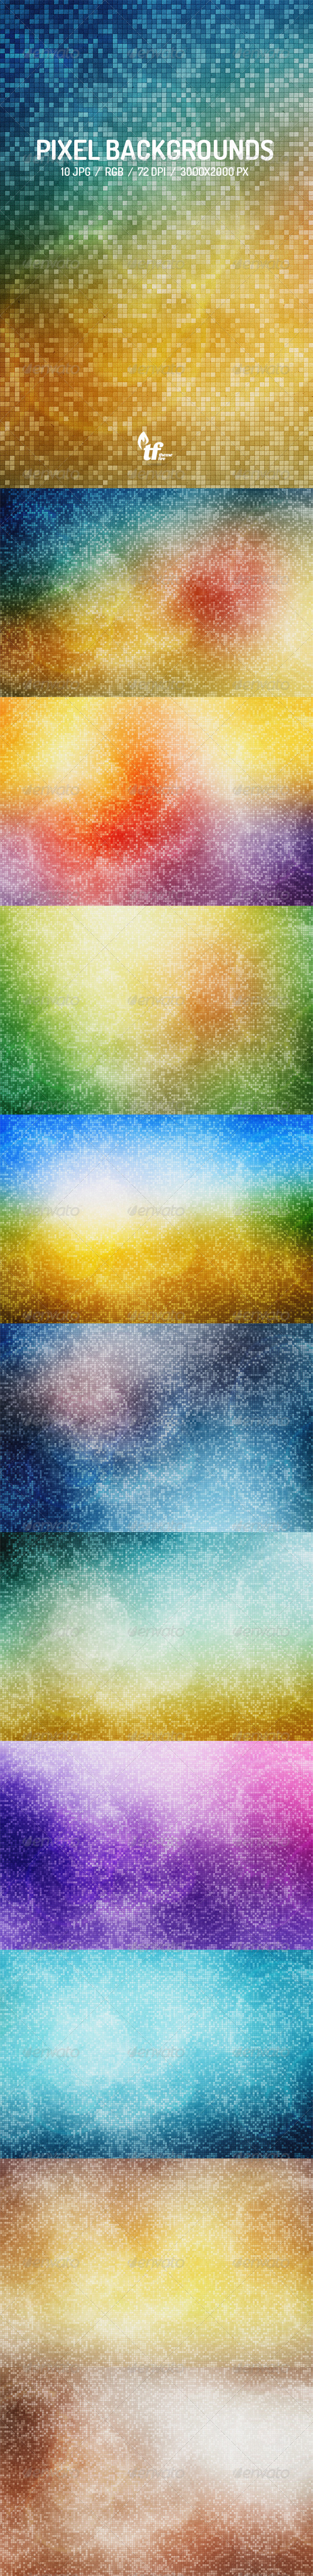 GraphicRiver 10 Pixel Backgrounds 7795131